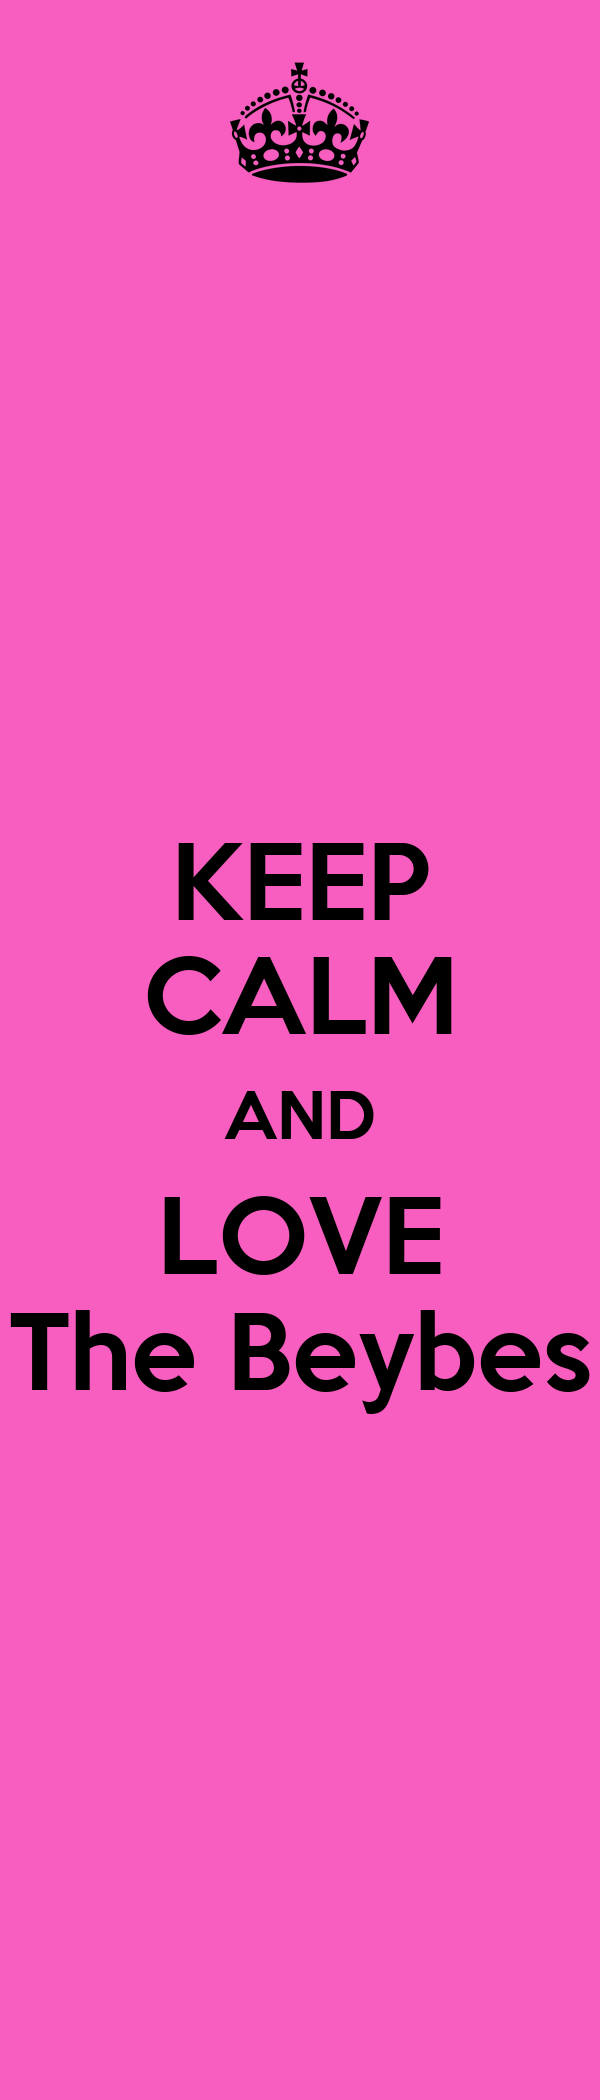 KEEP CALM AND LOVE The Beybes